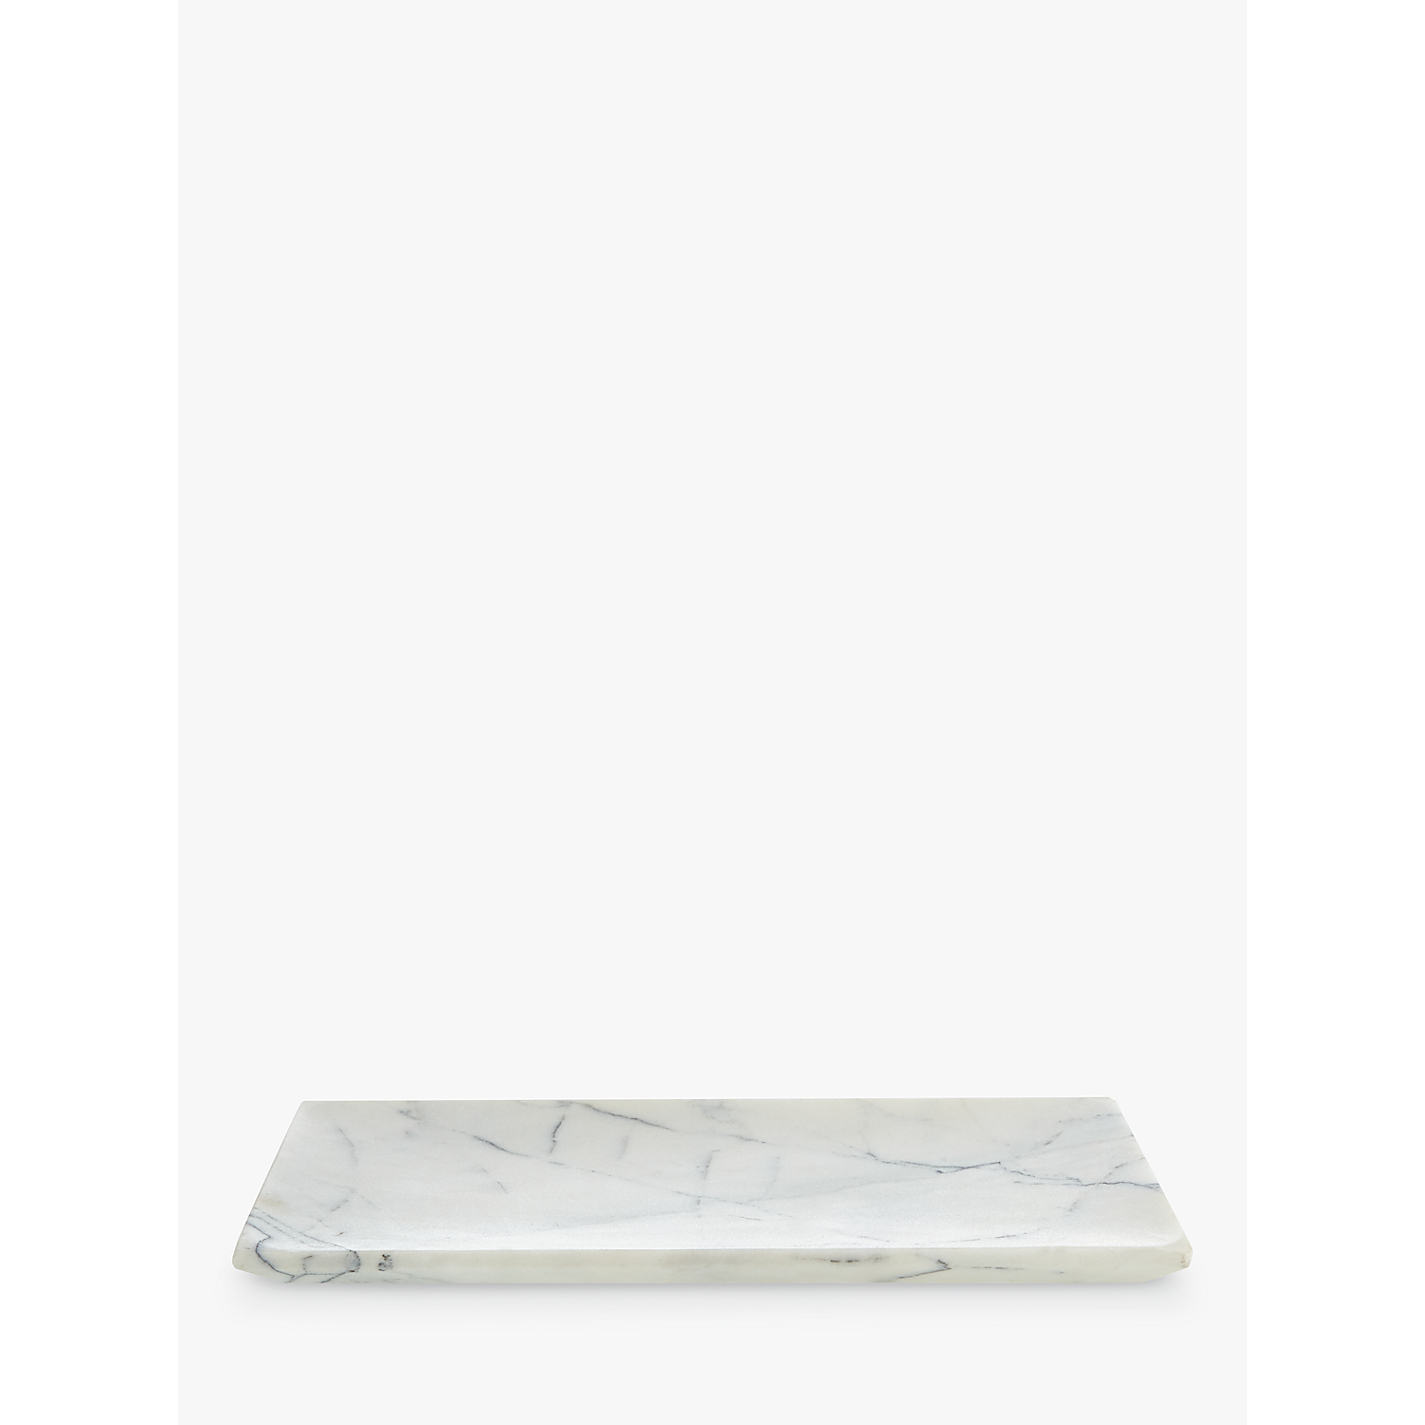 Buy John Lewis White Marble Bathroom Accessories Tray John Lewis